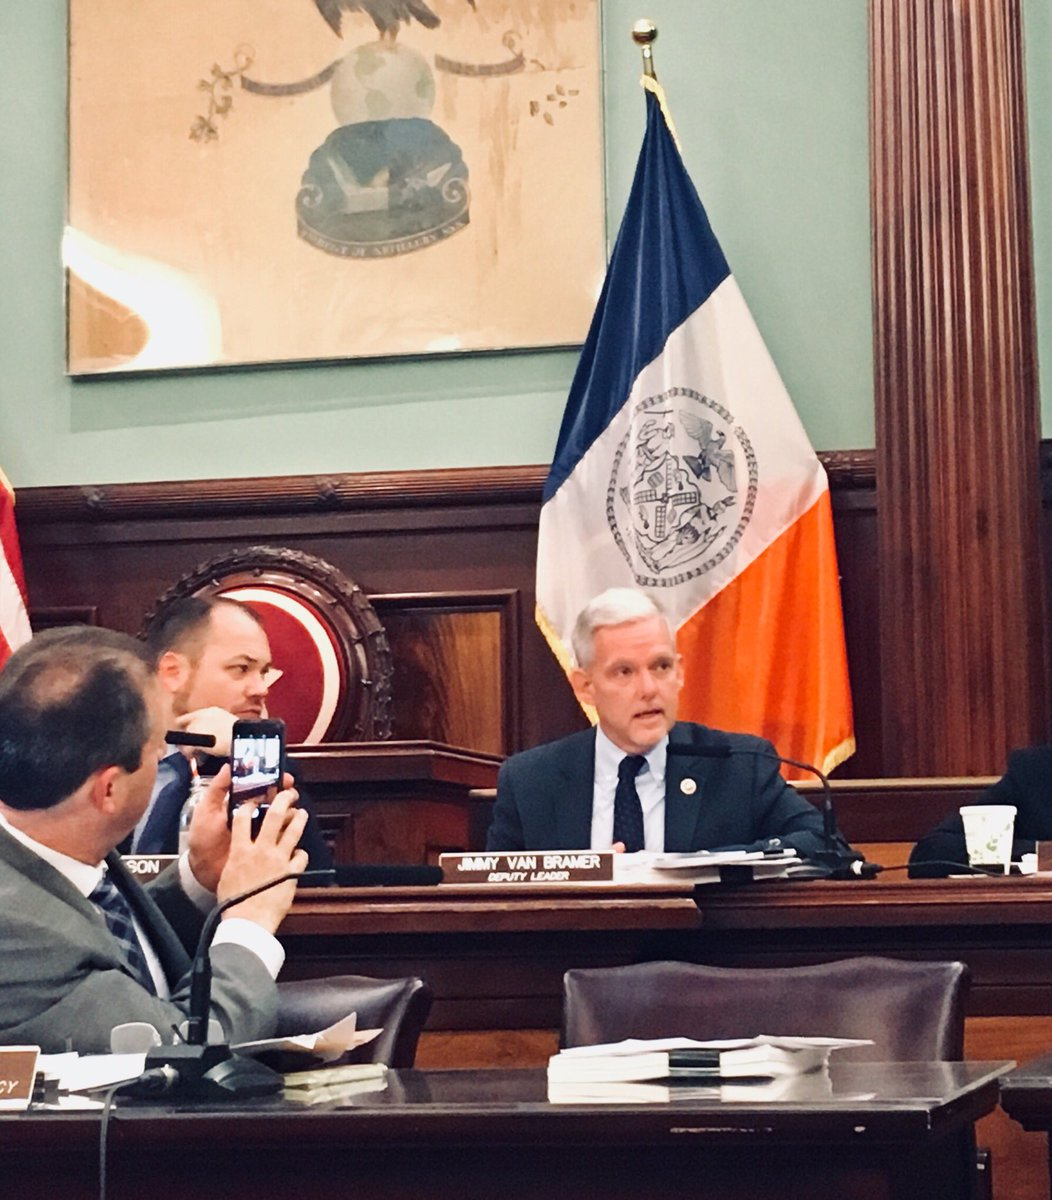 As I have said many times, this is a bad deal. This is bad for Long Island City, bad for Queens, and bad for New York City. The mayor and the governor caved to the richest man on earth, and then handed the bill to each and every New Yorker. The People deserve answers.